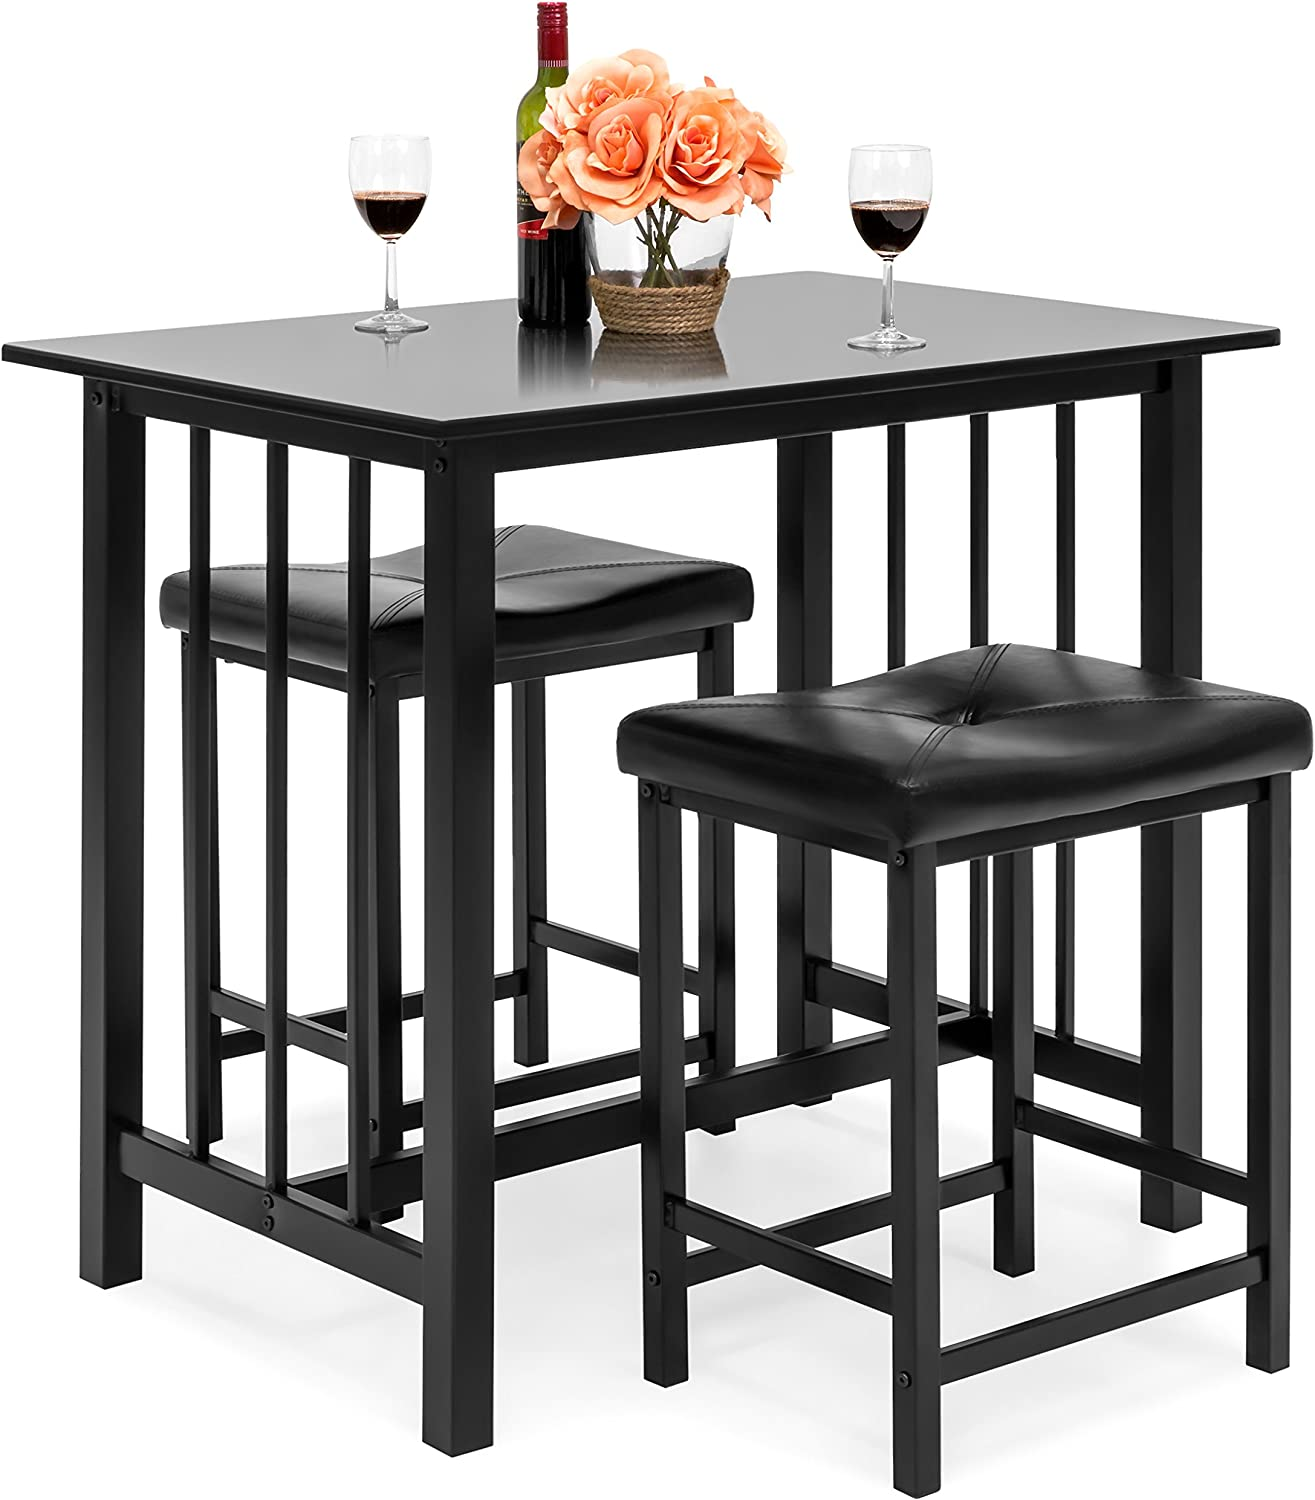 Best Choice Products Marble Veneer Kitchen Table Dining Set w 2 Counter Stools, Black